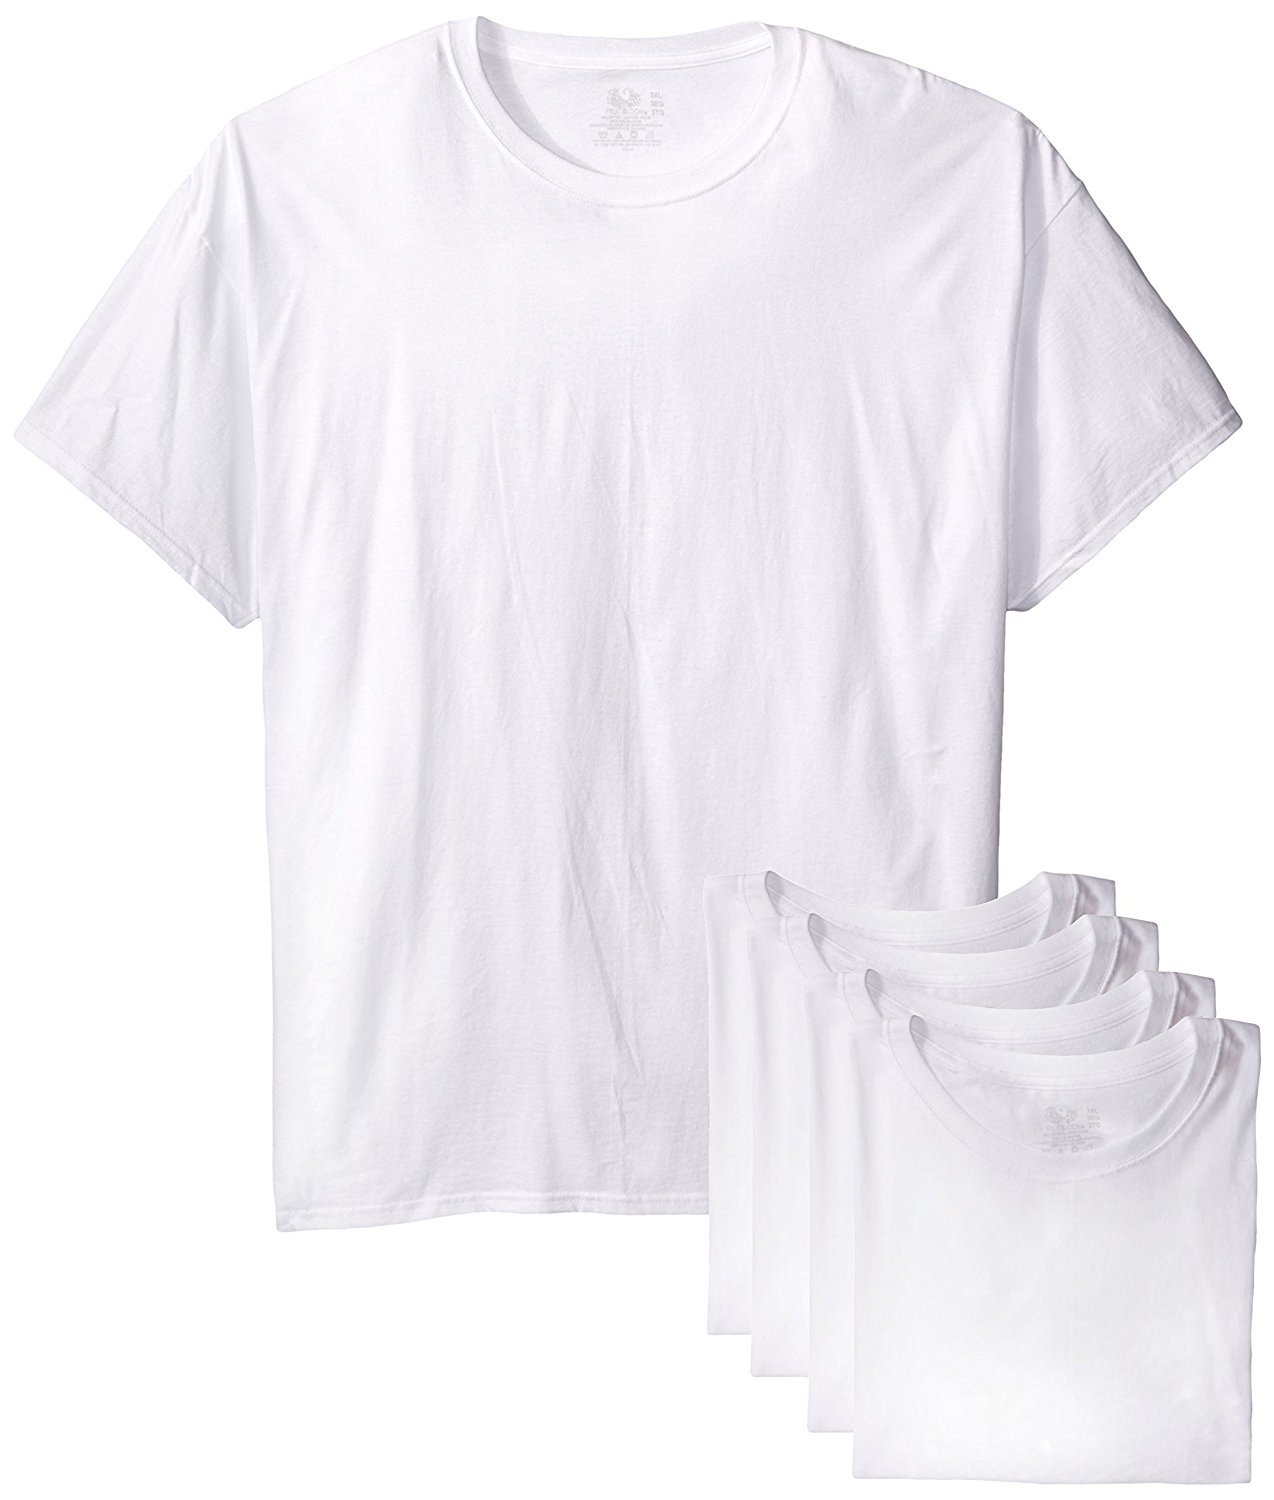 Fruit of the Loom Men's Stay Tucked Crew T-Shirt (White, 4X-Large)